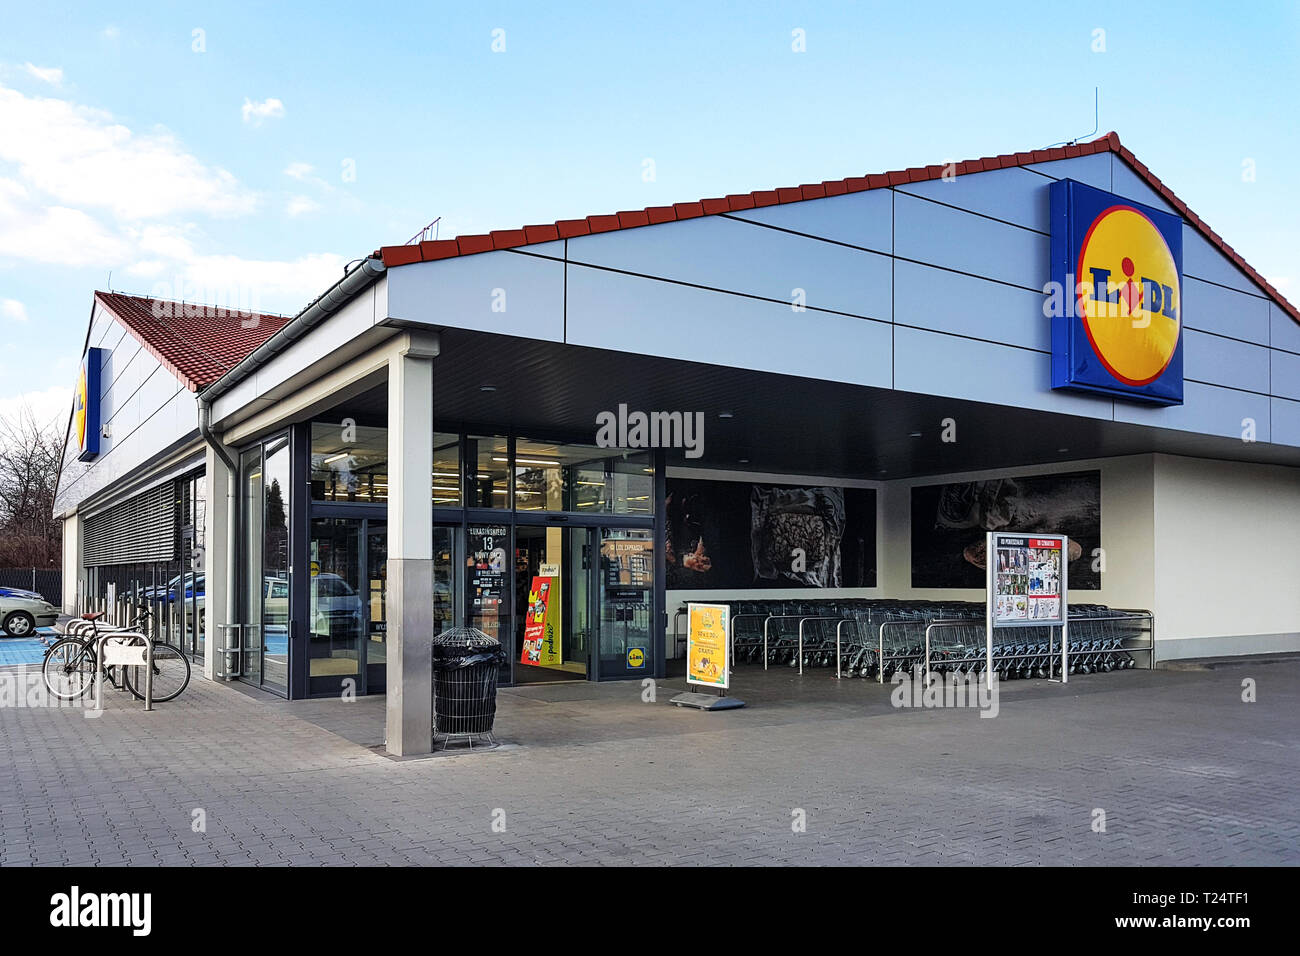 Nowy Sacz, Poland - March 20, 2019: Exterior view of the Lidl Store. Lidl is a large German global discount supermarket chain based in Neckarsulm. Stock Photo